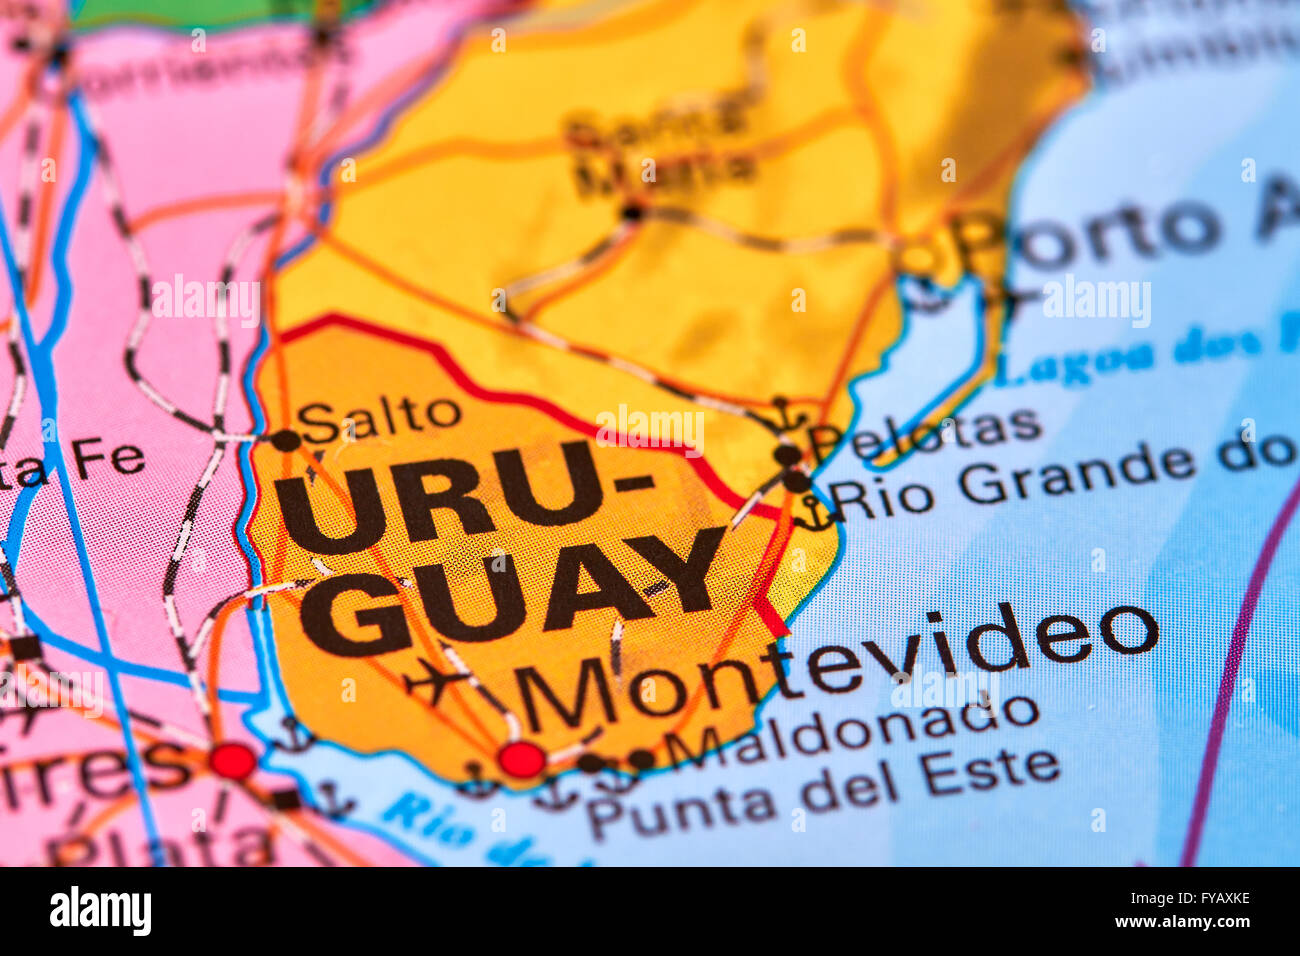 Uruguay, Country in South America on the World Map - Stock Image